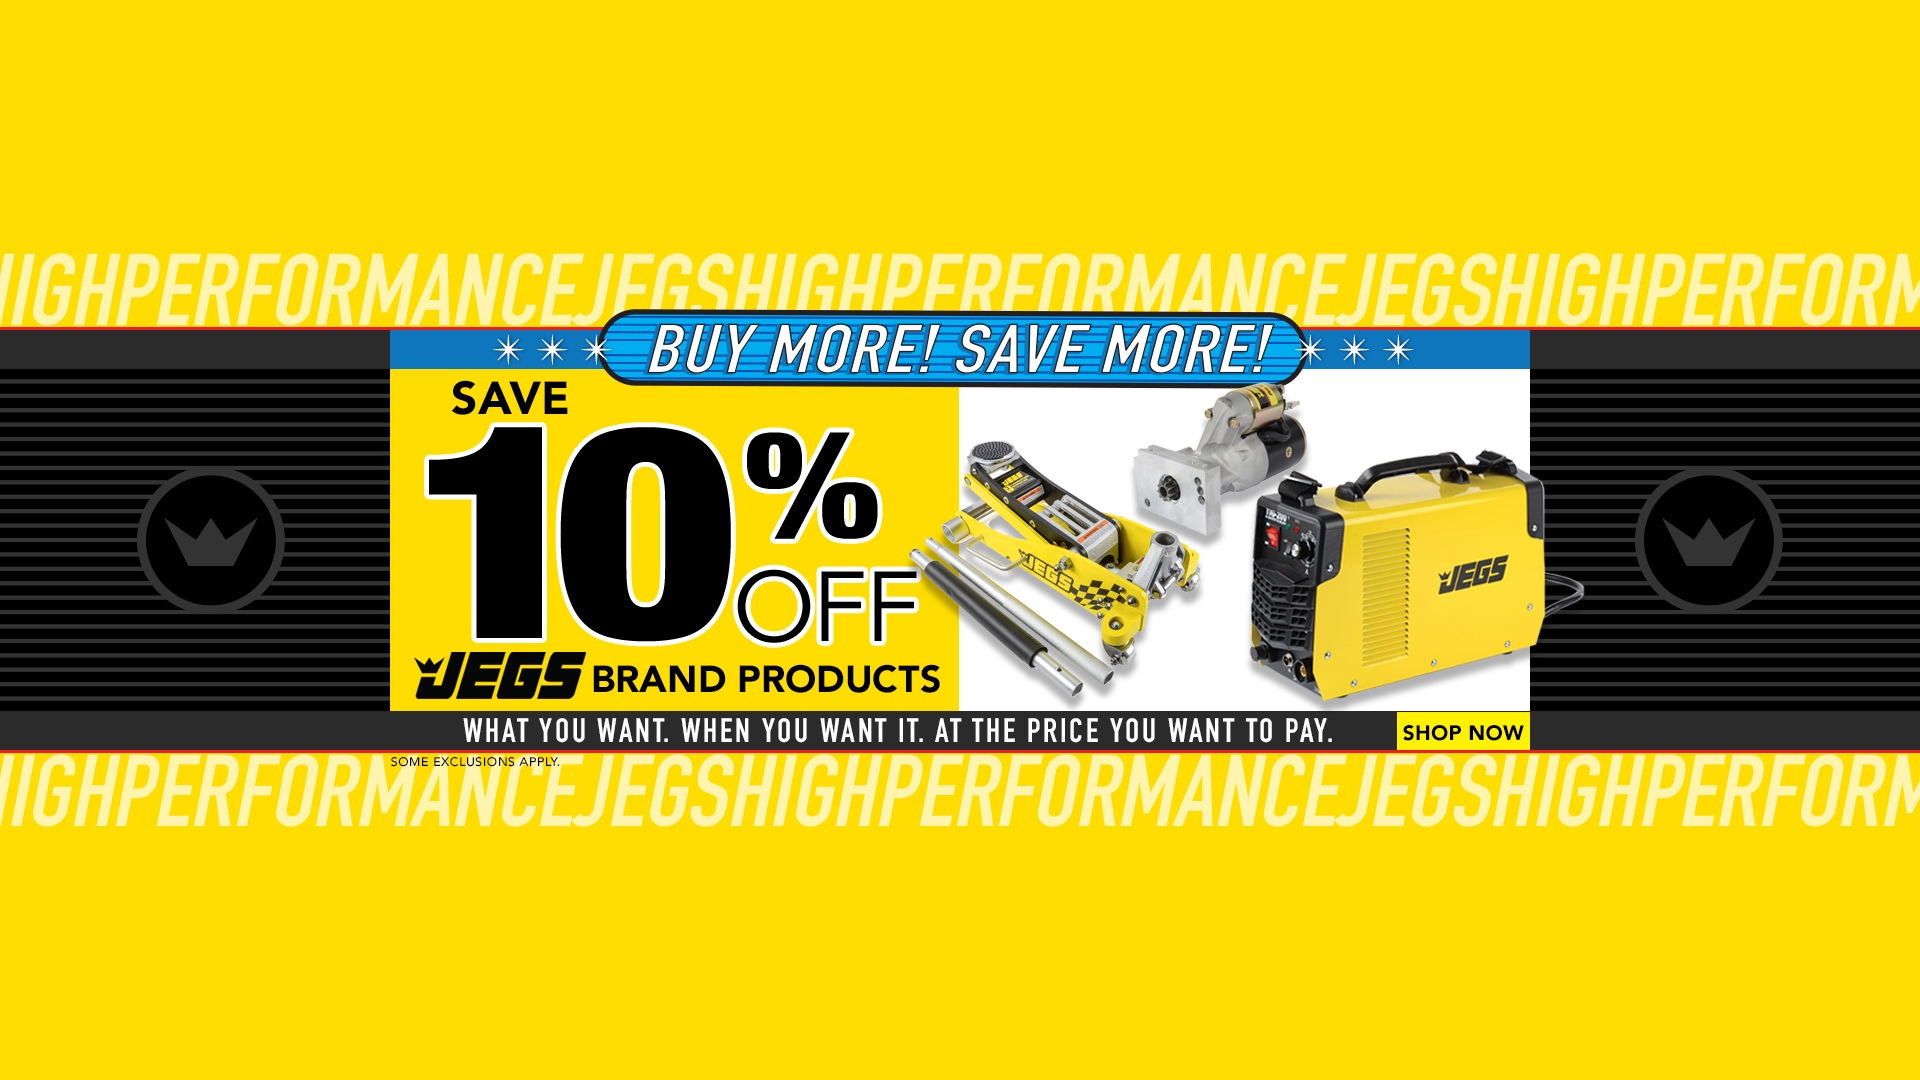 Save 10% off JEGS Brand Products